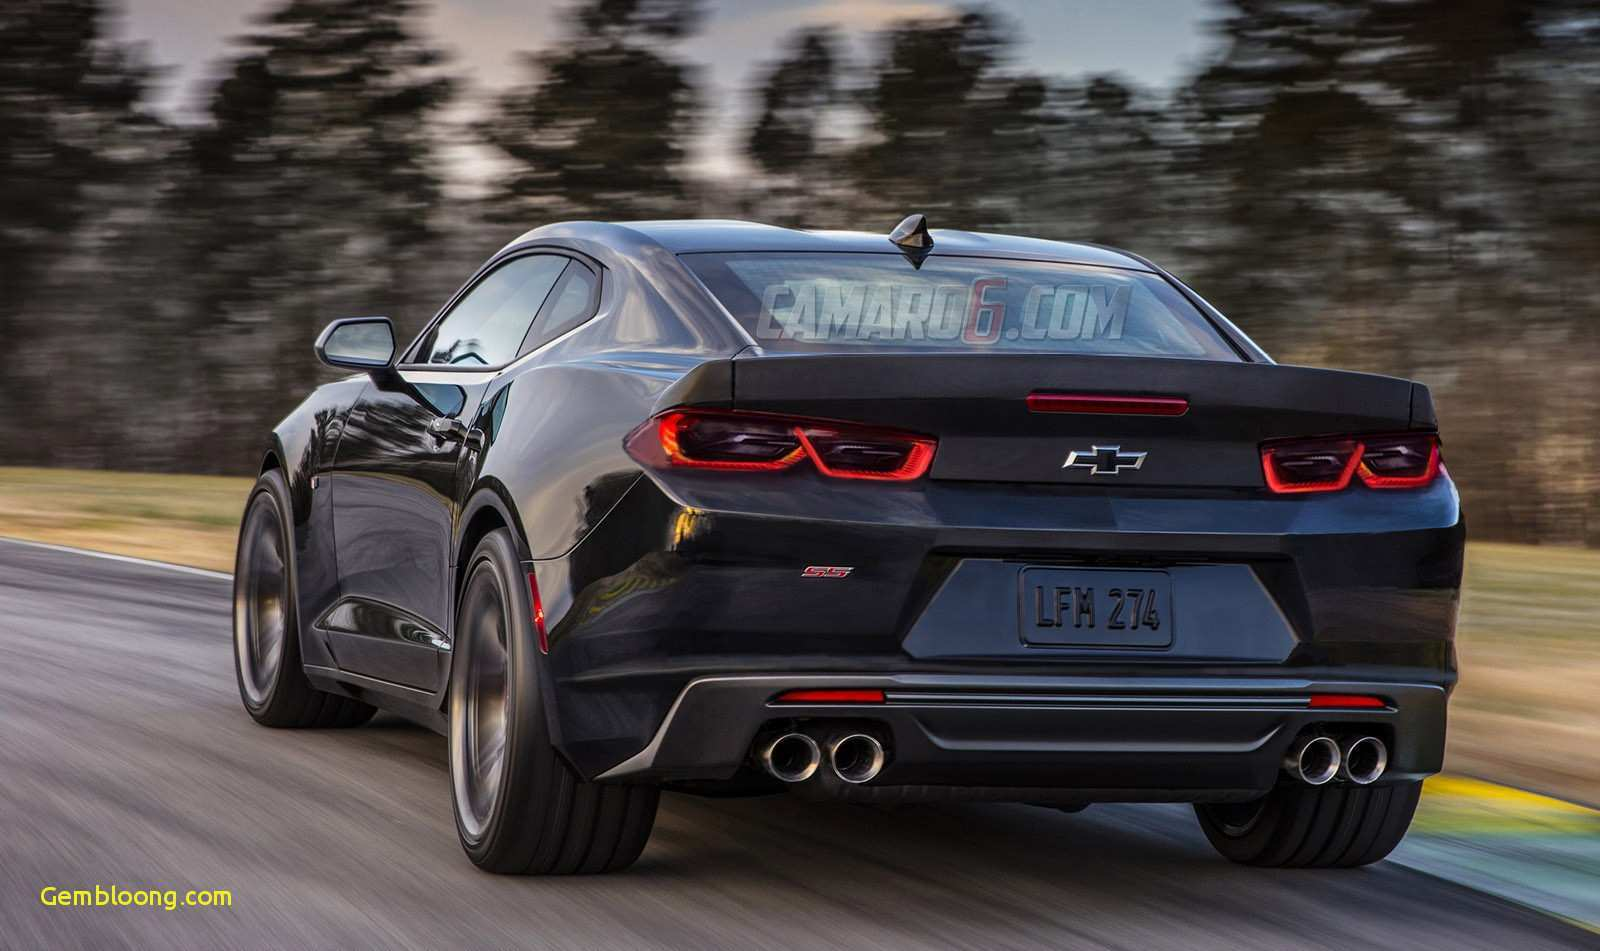 37 All New 2019 Camaro Z28 Horsepower Redesign And Concept